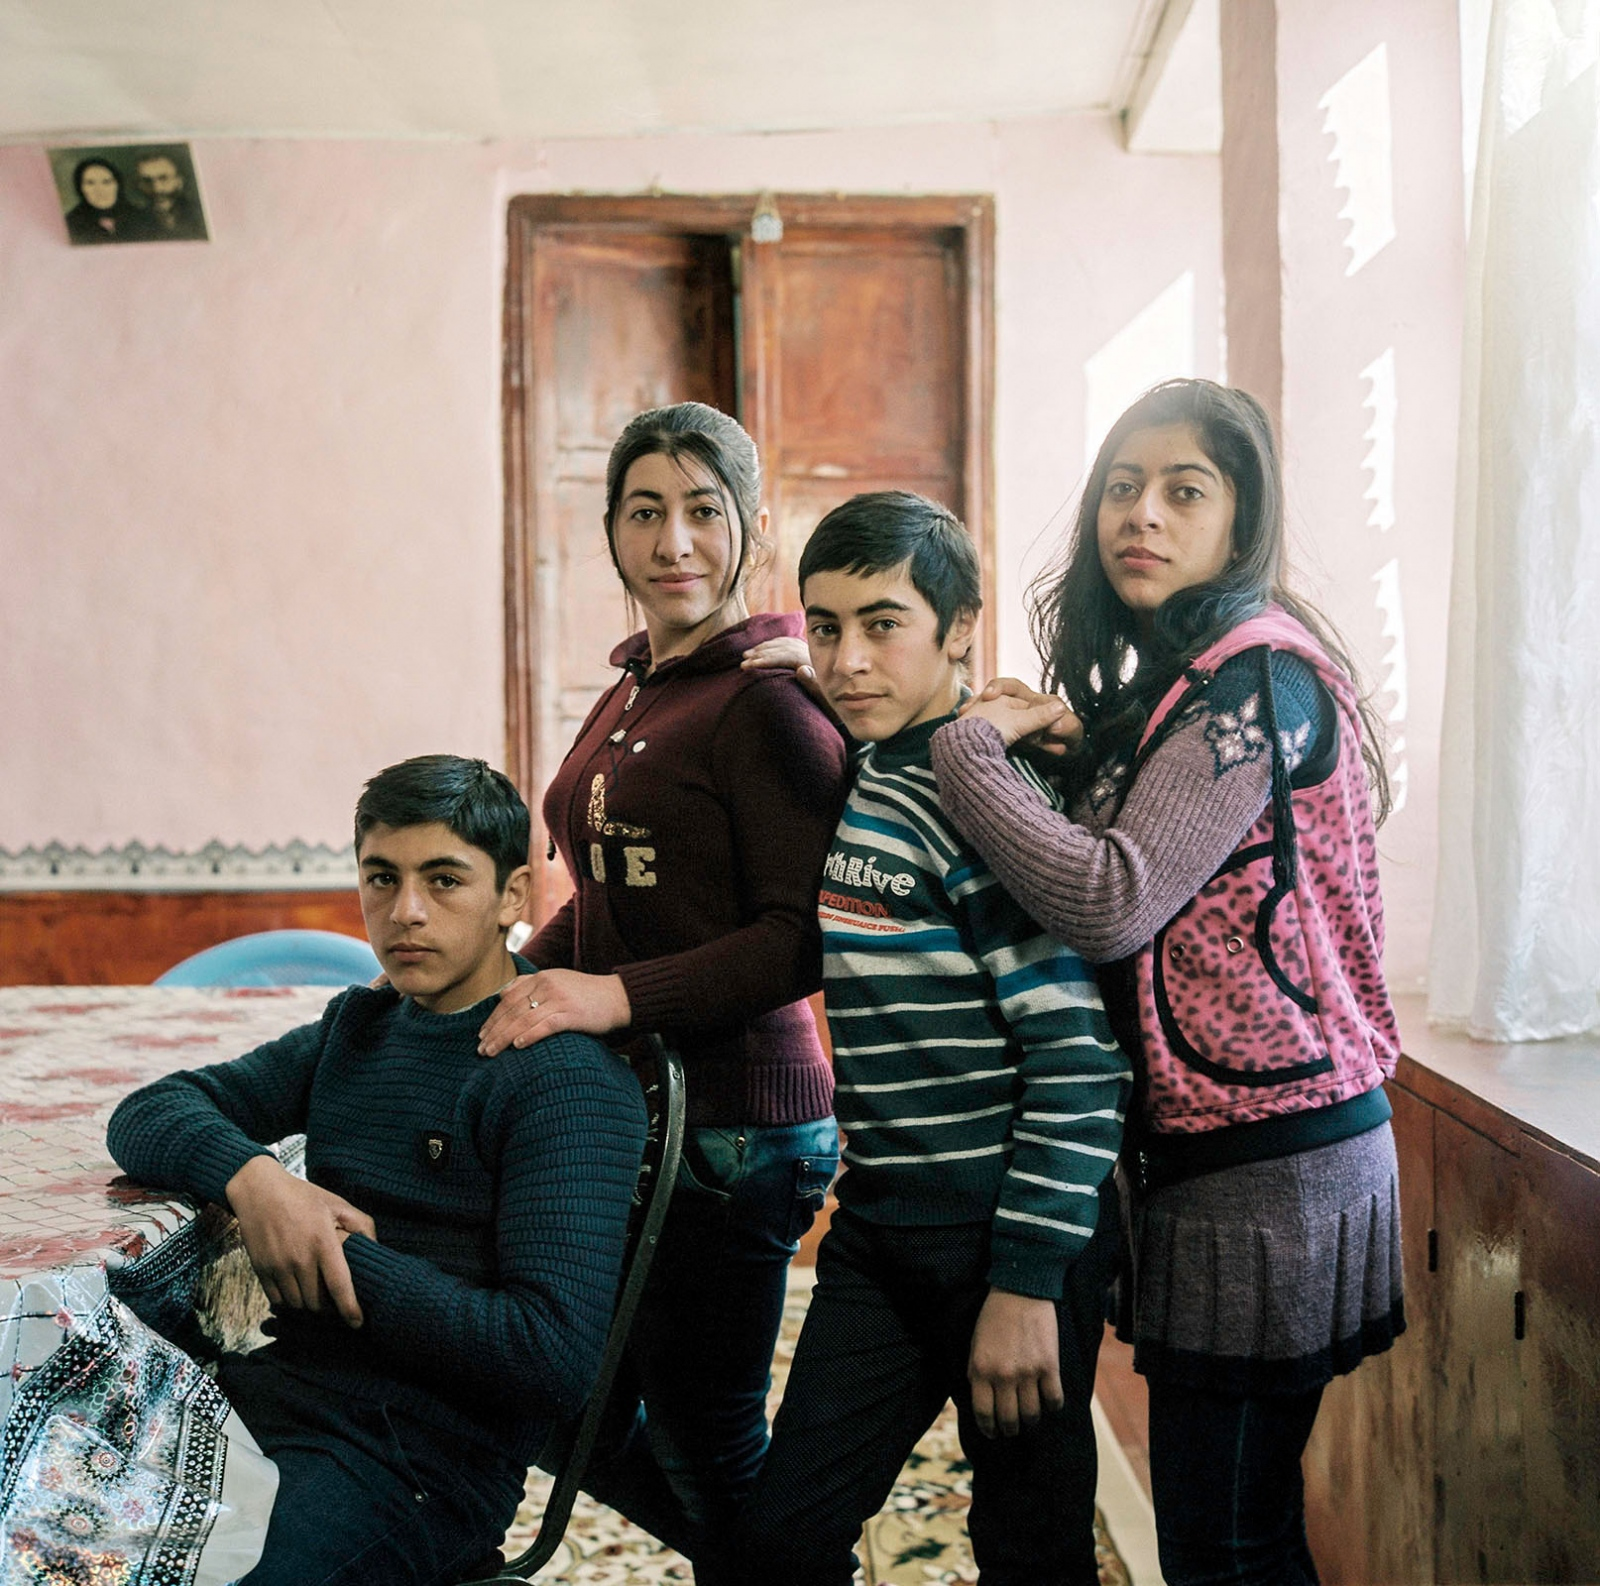 Izzet, Hamida, Samir and Maryam at home in Khanilq village. Azerbaijan. 2018